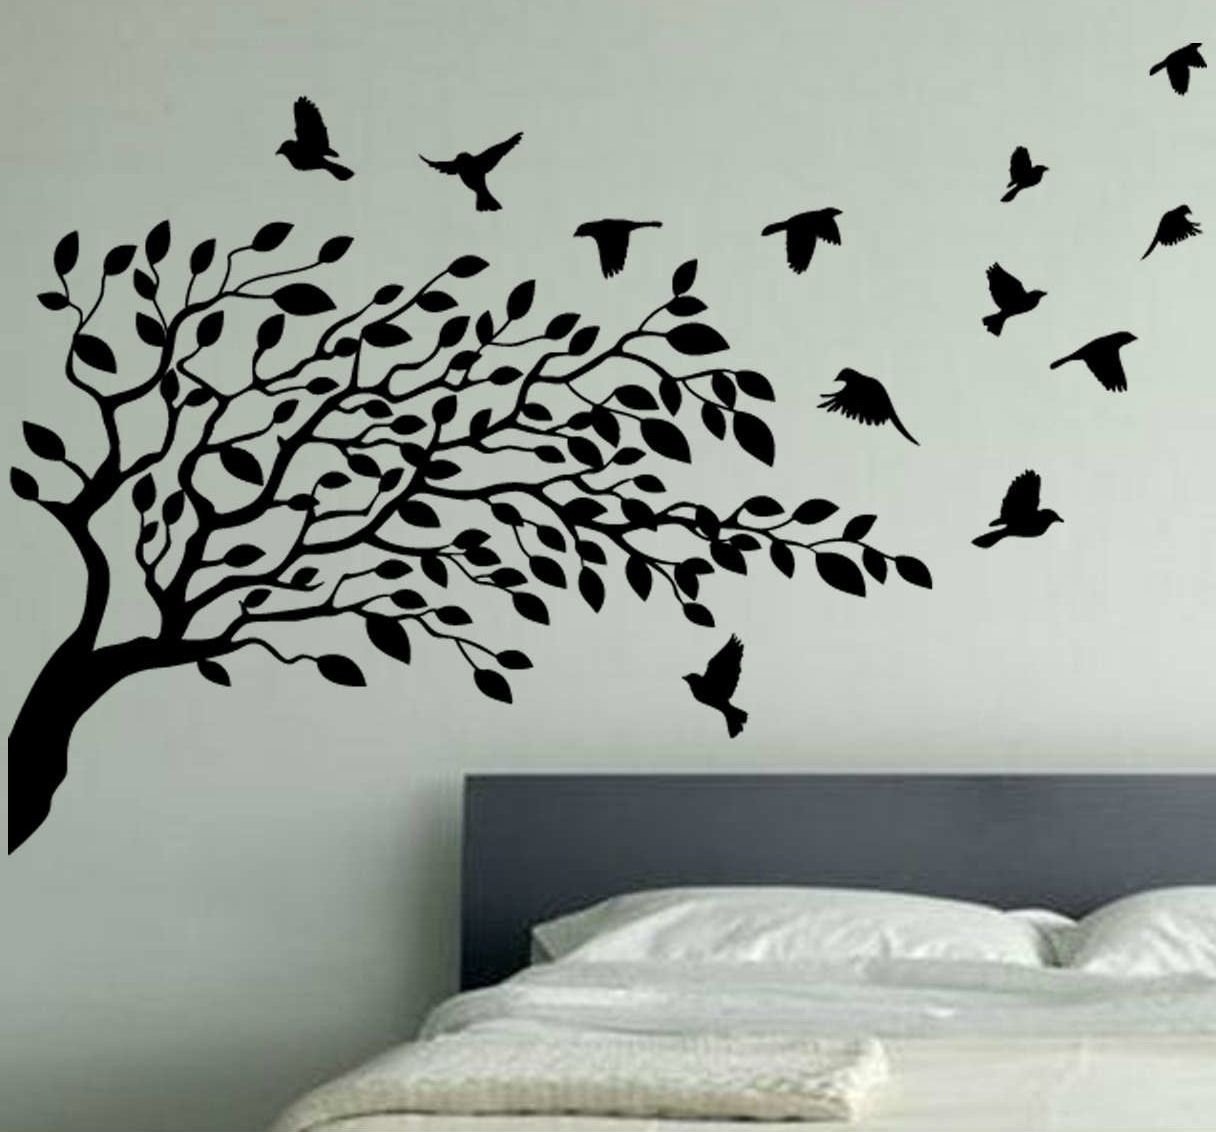 Wallpaper wall decals stickers art vinyl removable for Bird wall art